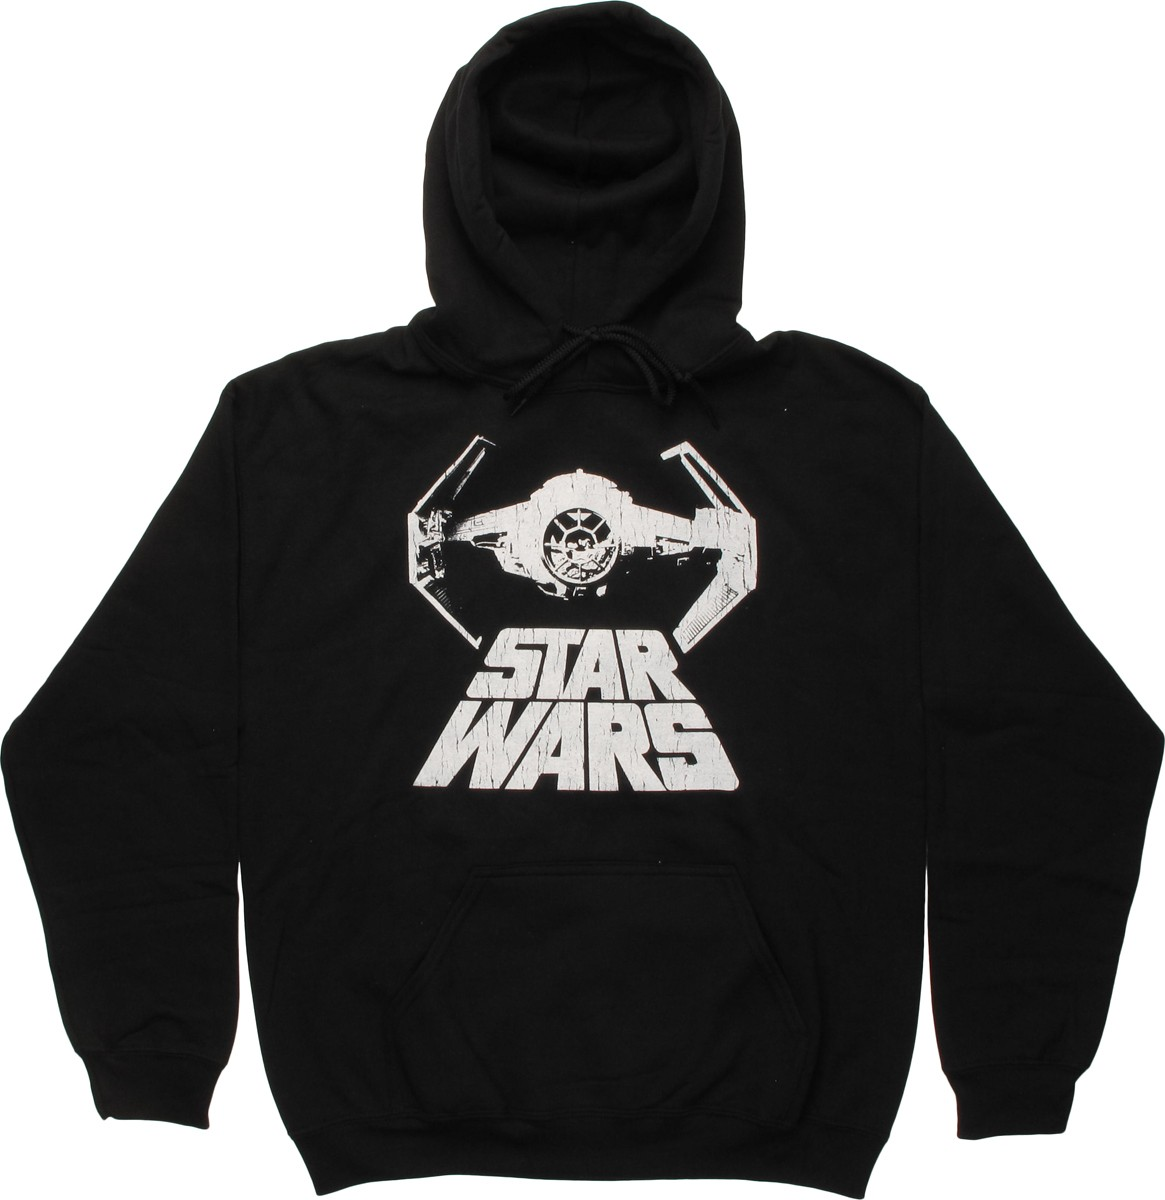 star wars name vader 39 s tie advance pullover hoodie. Black Bedroom Furniture Sets. Home Design Ideas